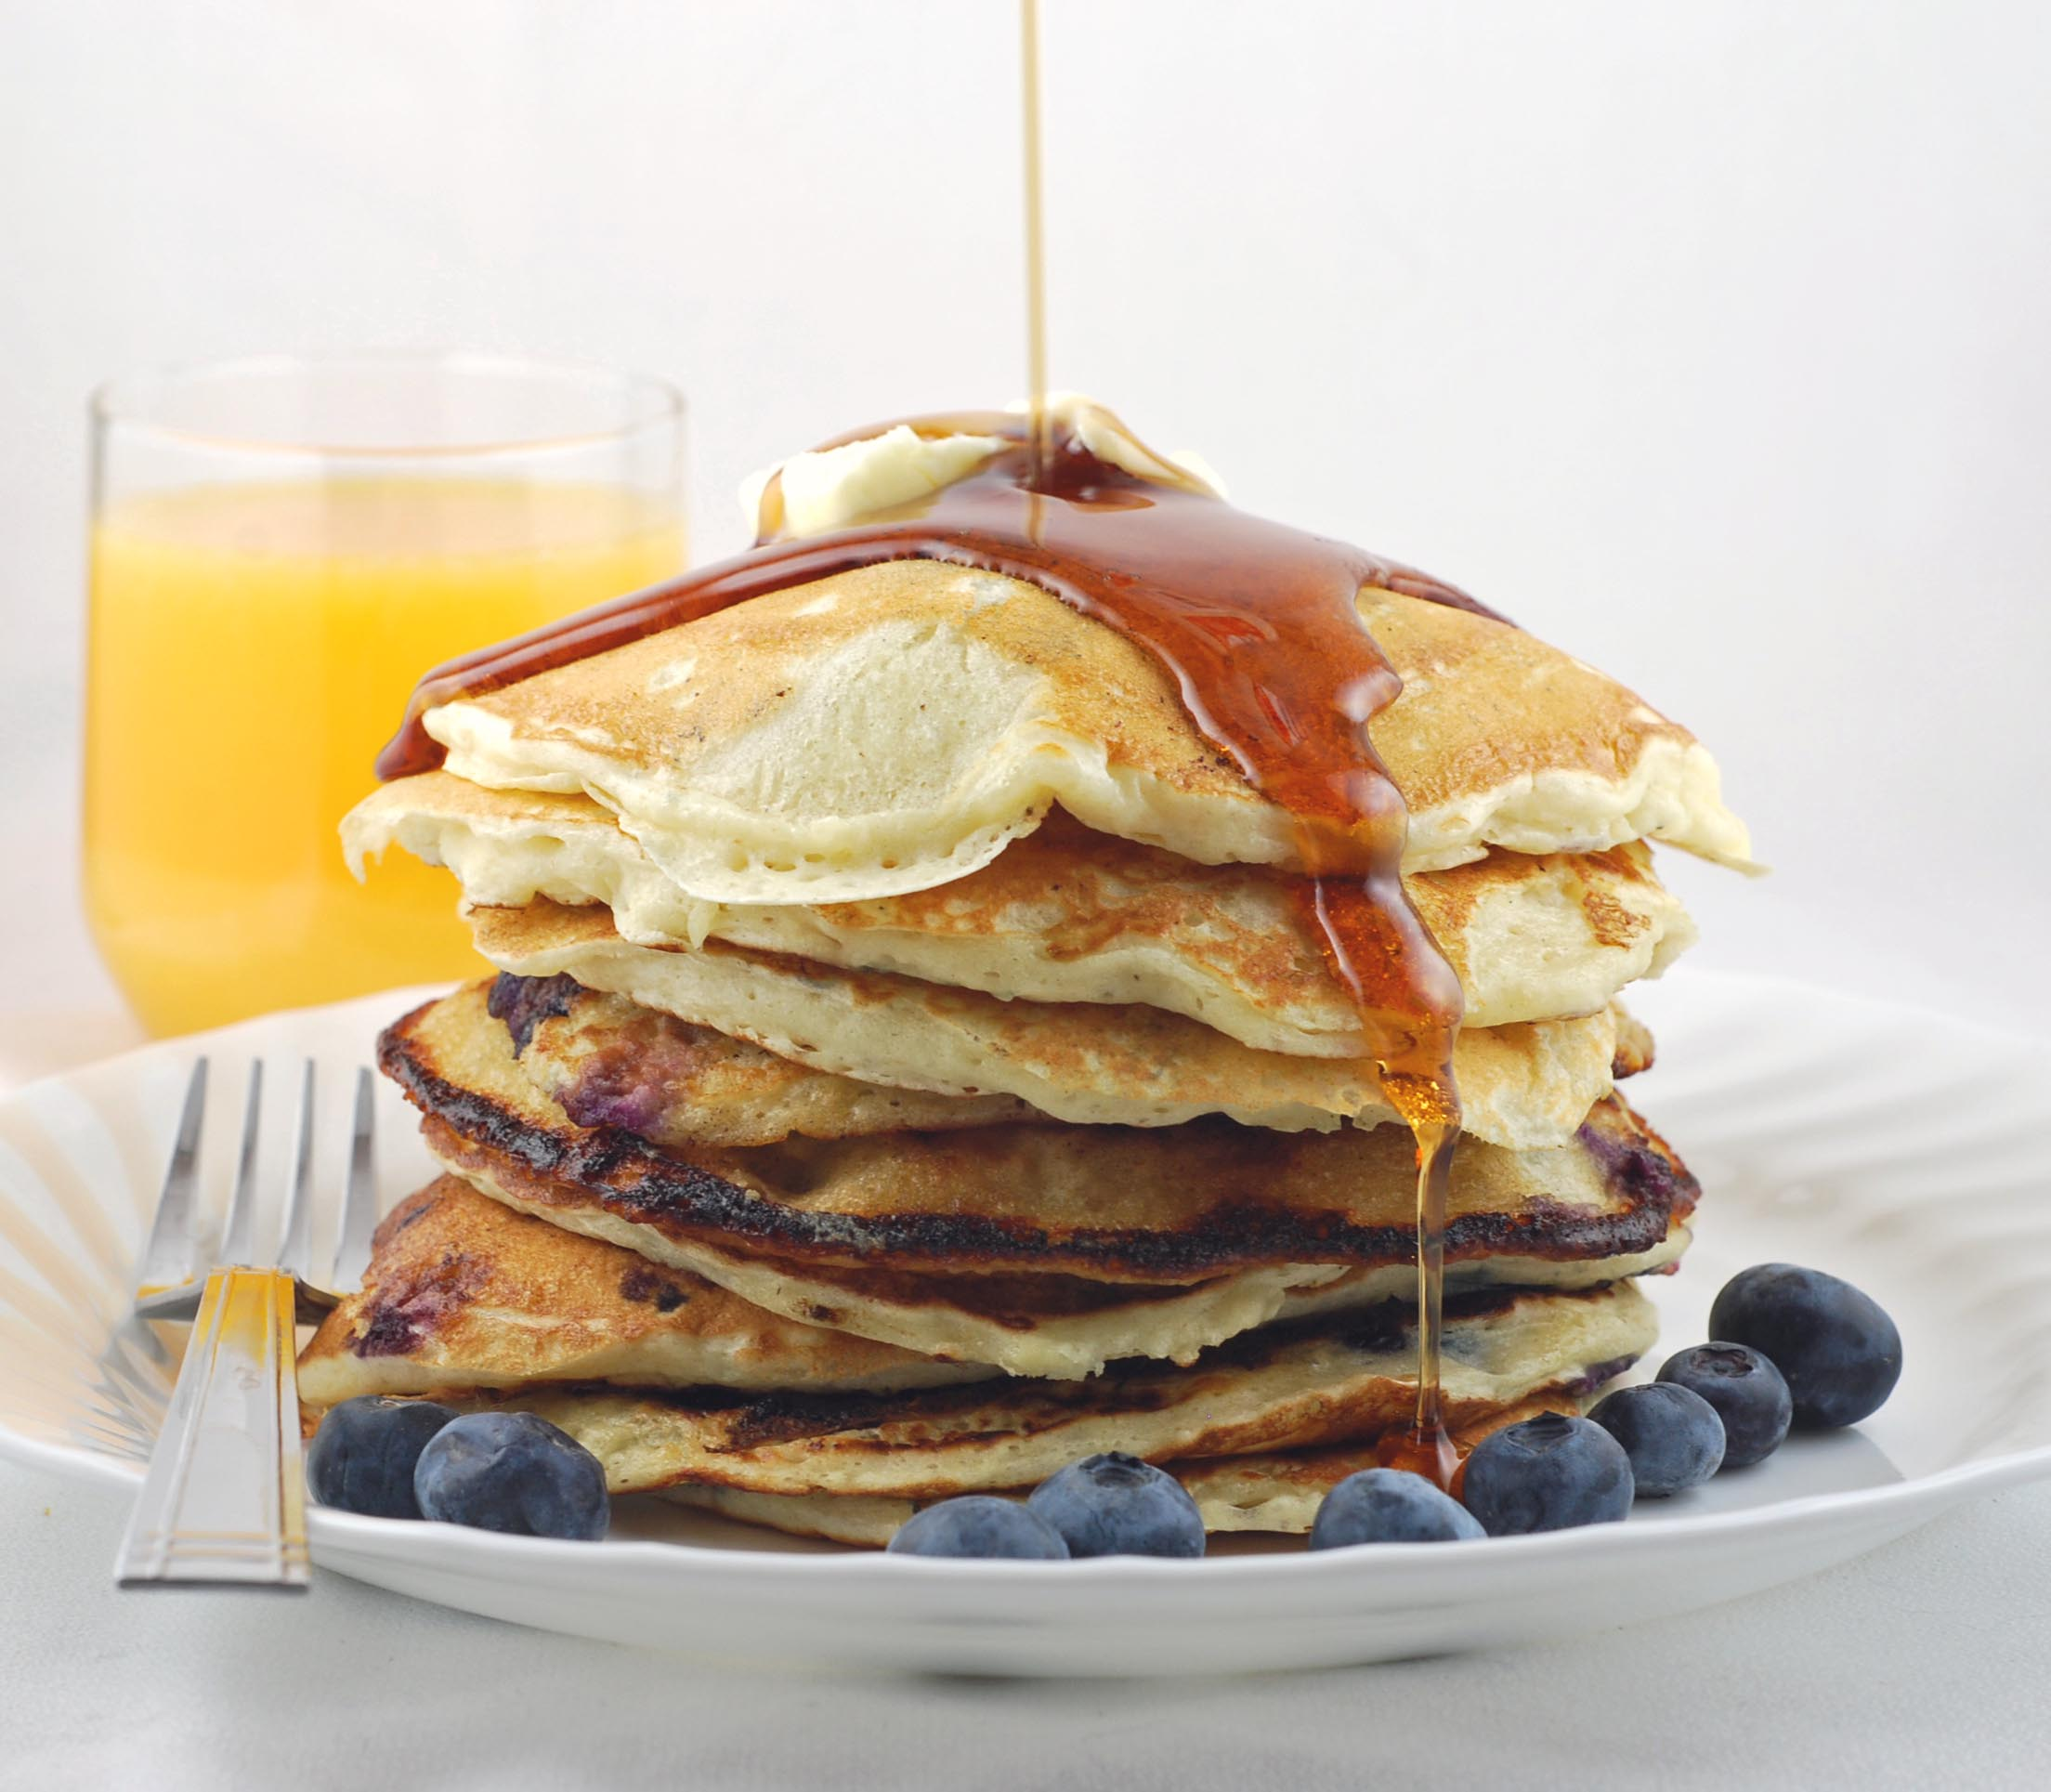 Blissfully Delicious: Best Buttermilk Pancakes